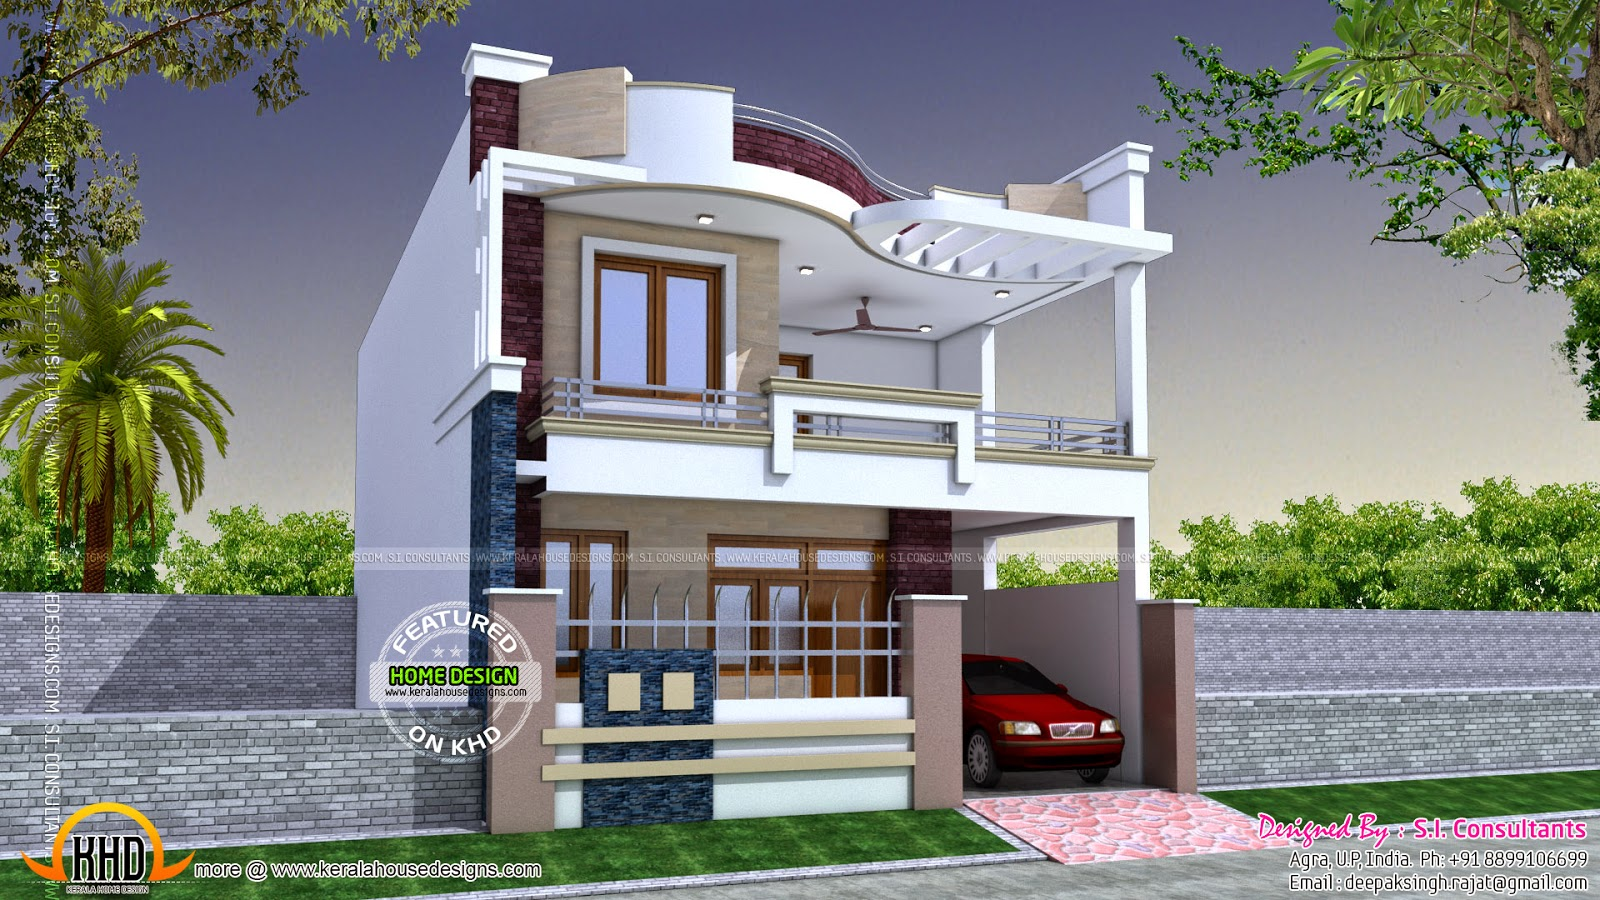 Modern indian home design kerala home design and floor plans for Home gallery design